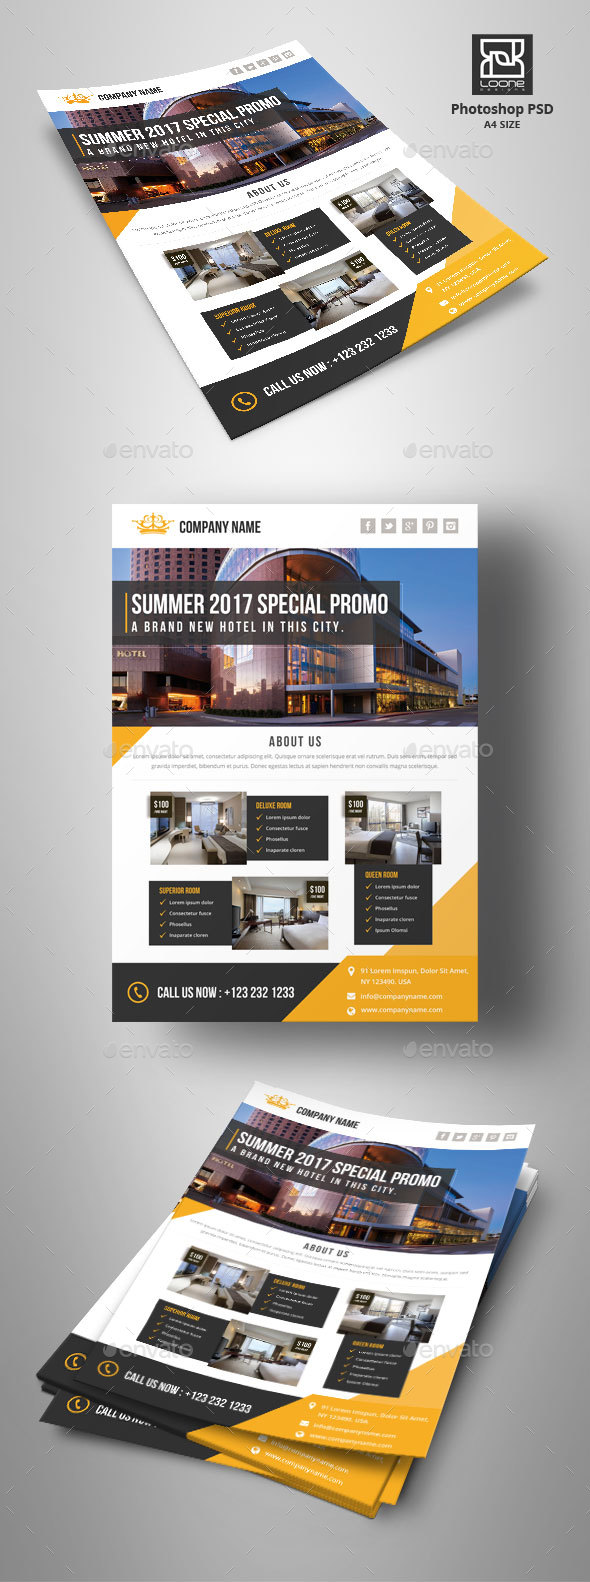 GraphicRiver Hotel Flyer 20430119